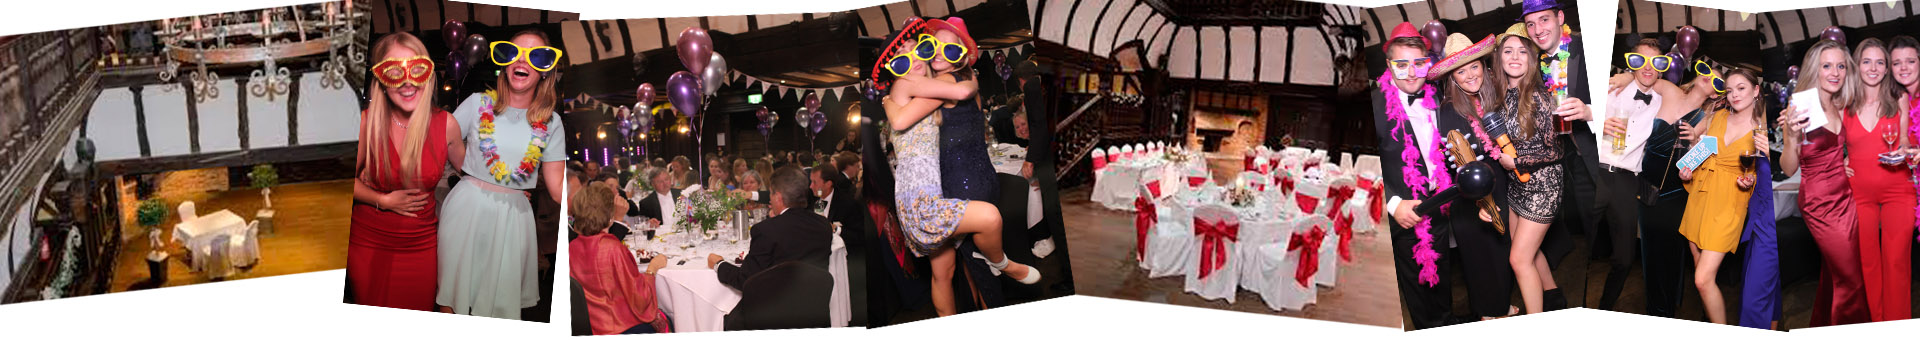 Photo booth hire at Pine Ridge Golf Club in Camberley, Surrey